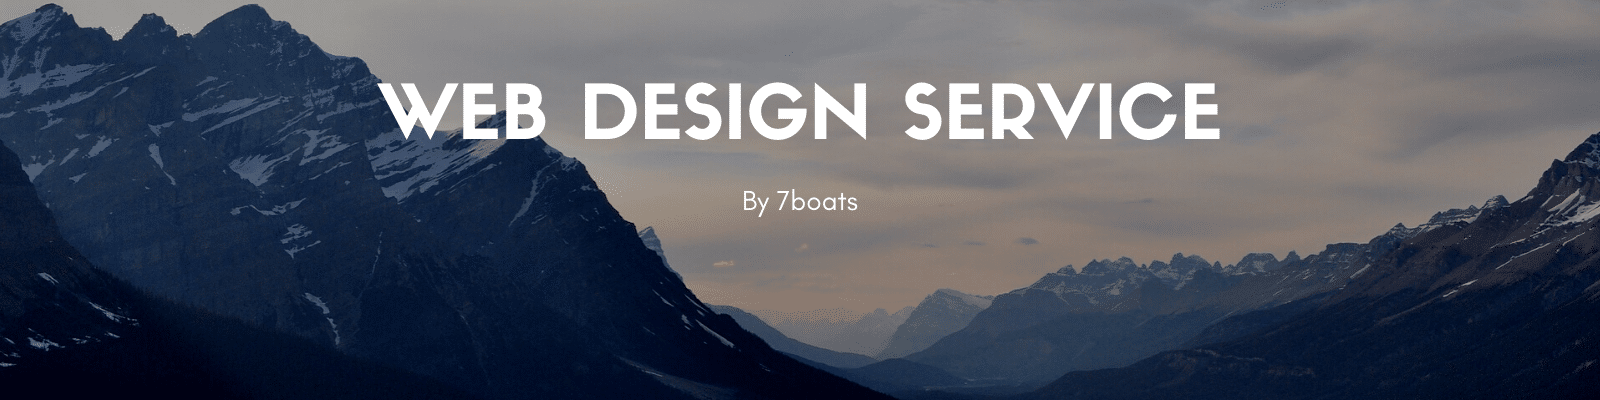 Web Design Service by 7boats